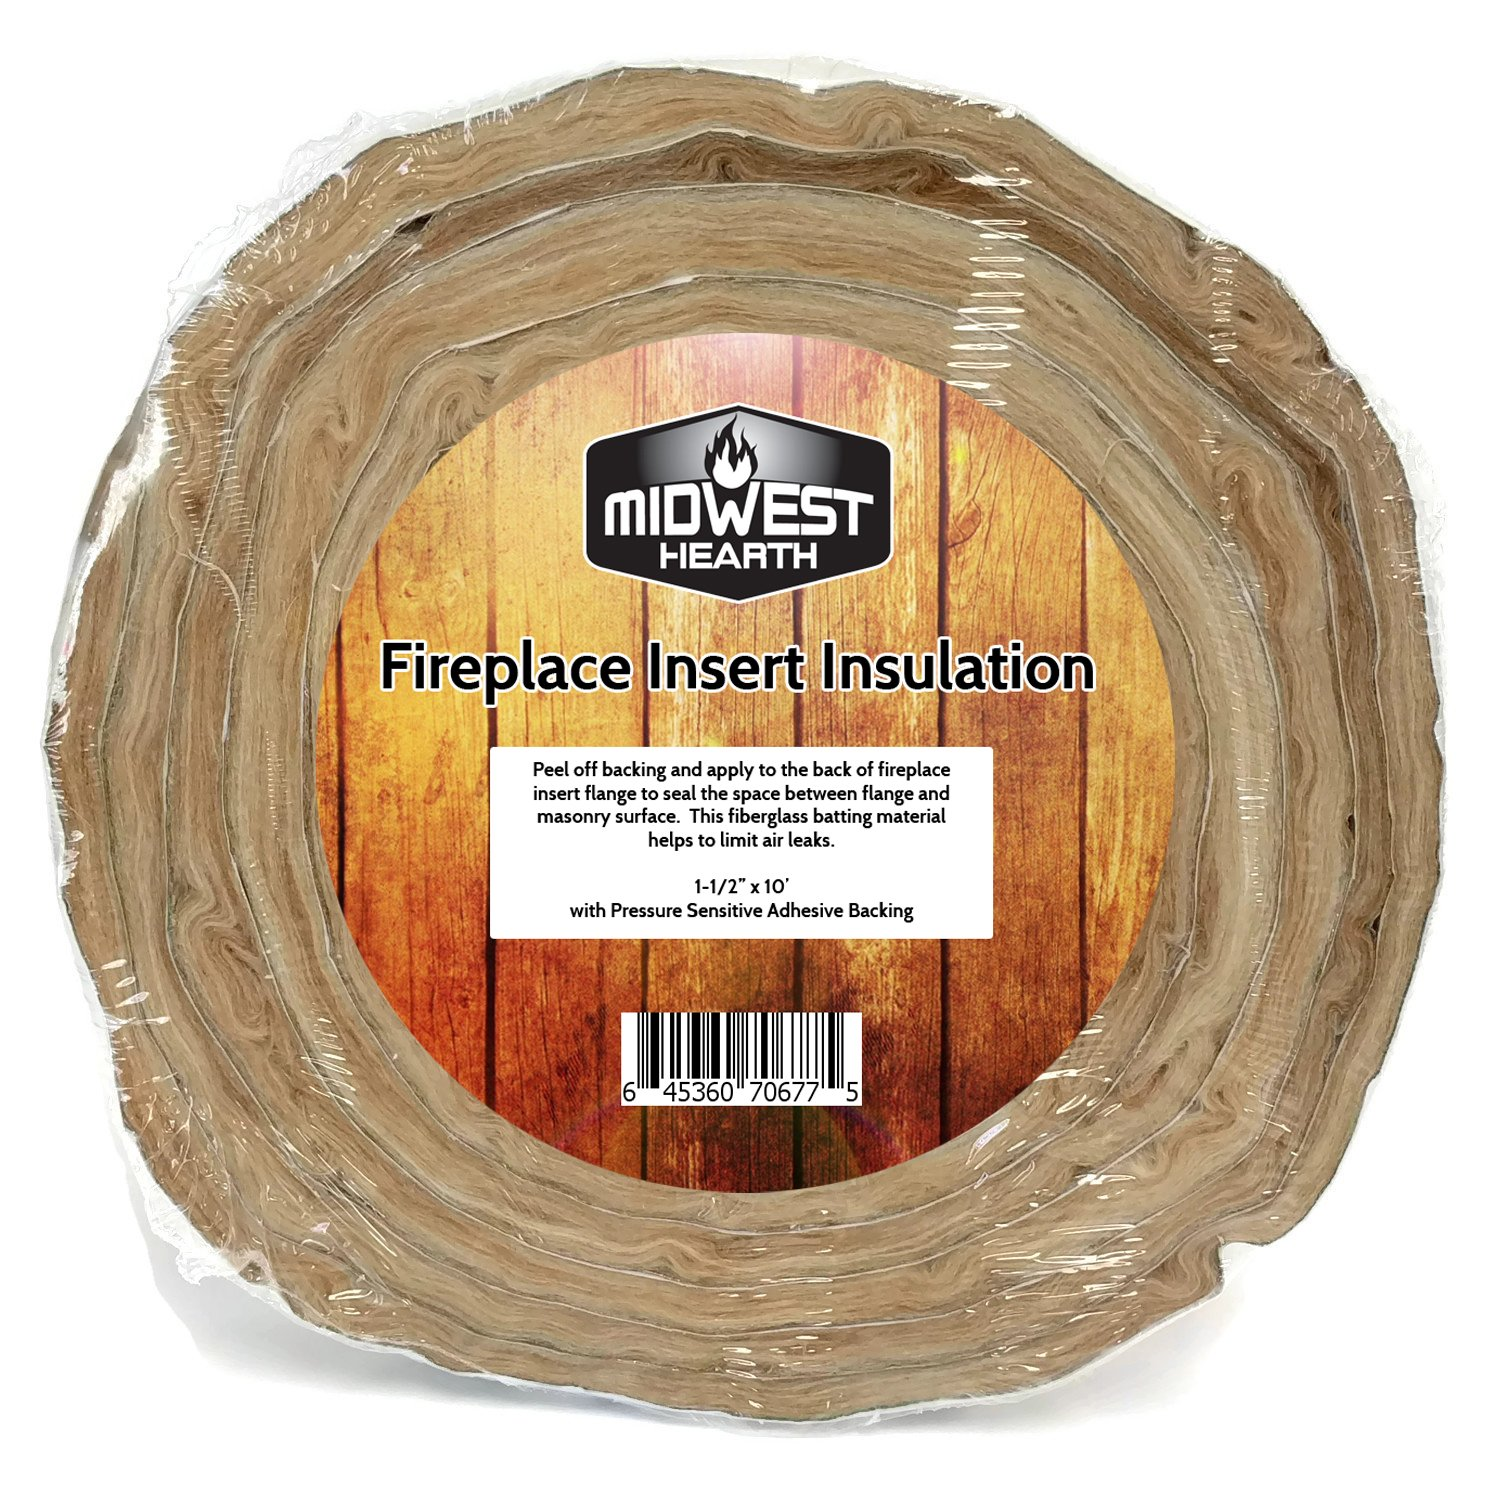 amazon com midwest hearth fireplace insert insulation 10 u0027 roll w